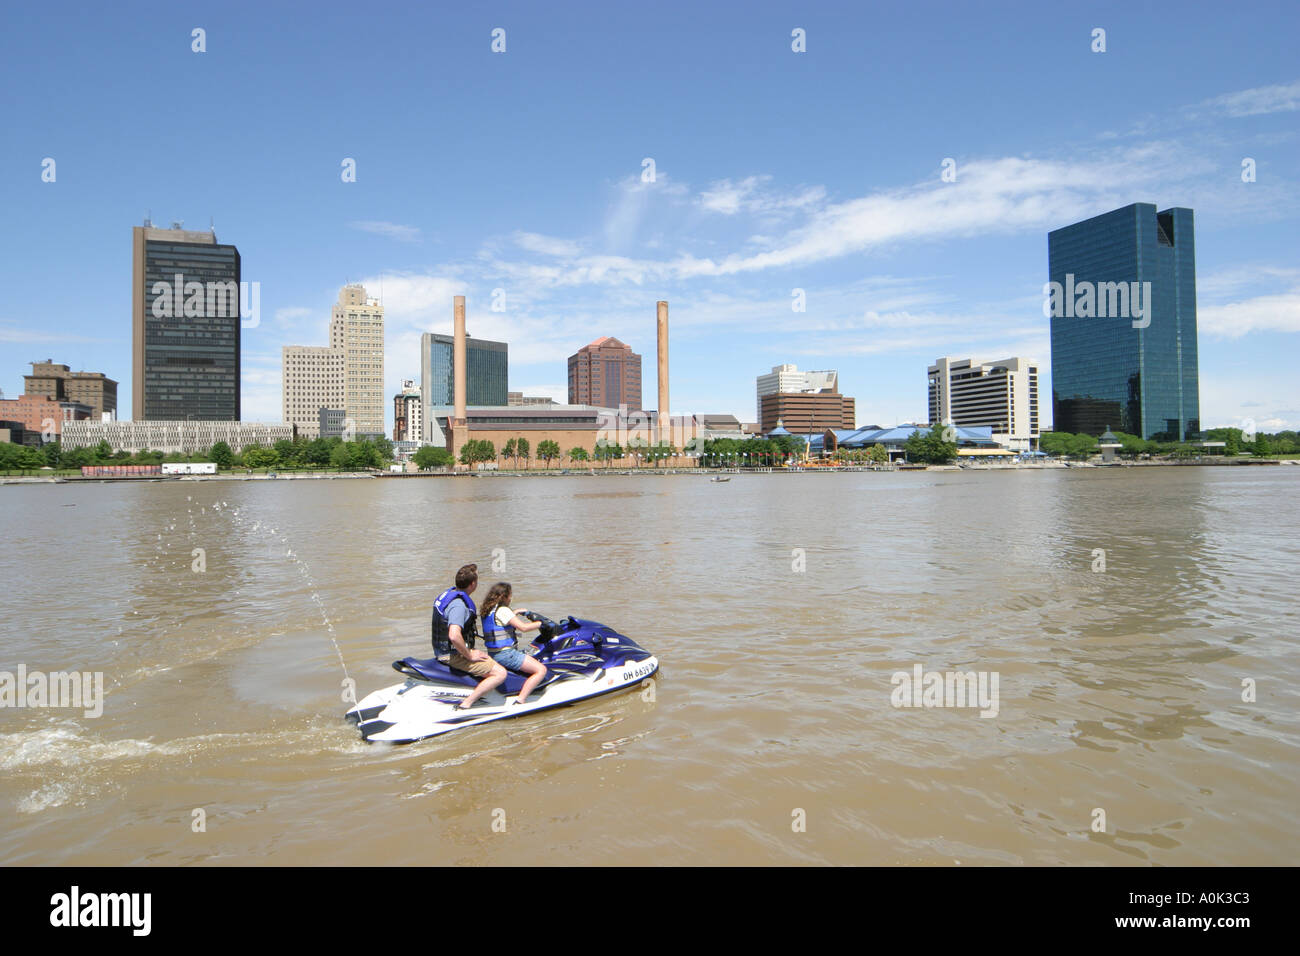 Toledo ohio maumee river jet ski downtown skyline view from the docks father daughter girl